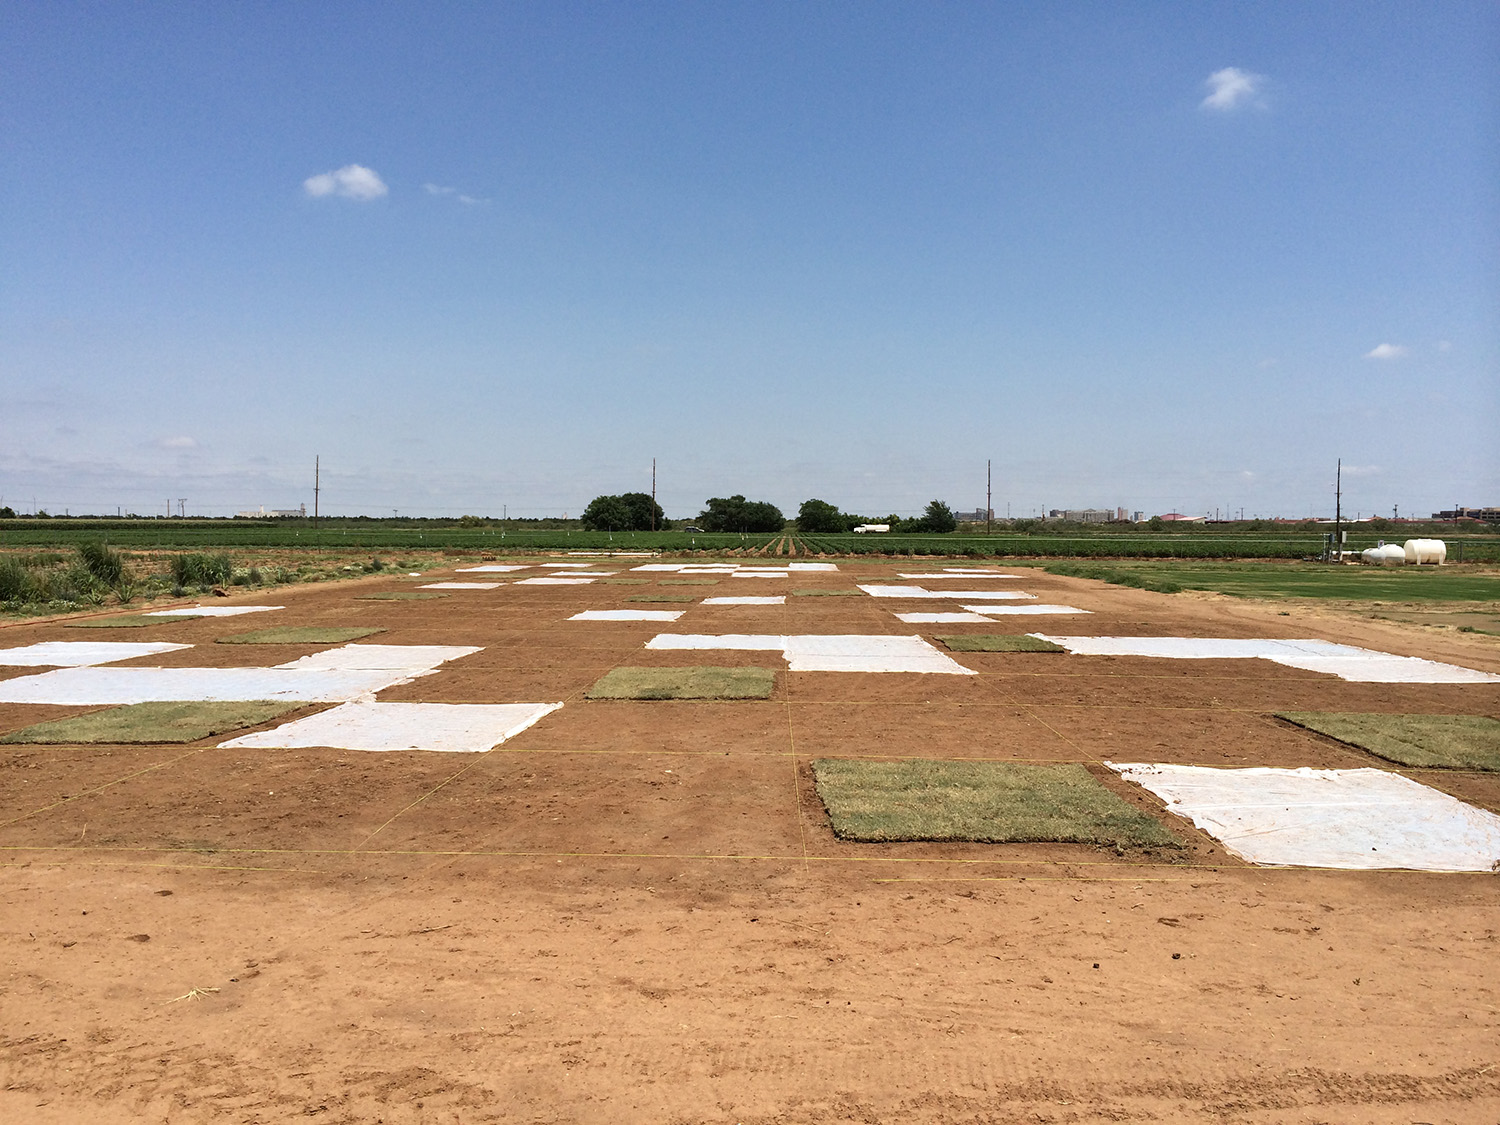 Turfgrass planted at Quaker Avenue Research Farm